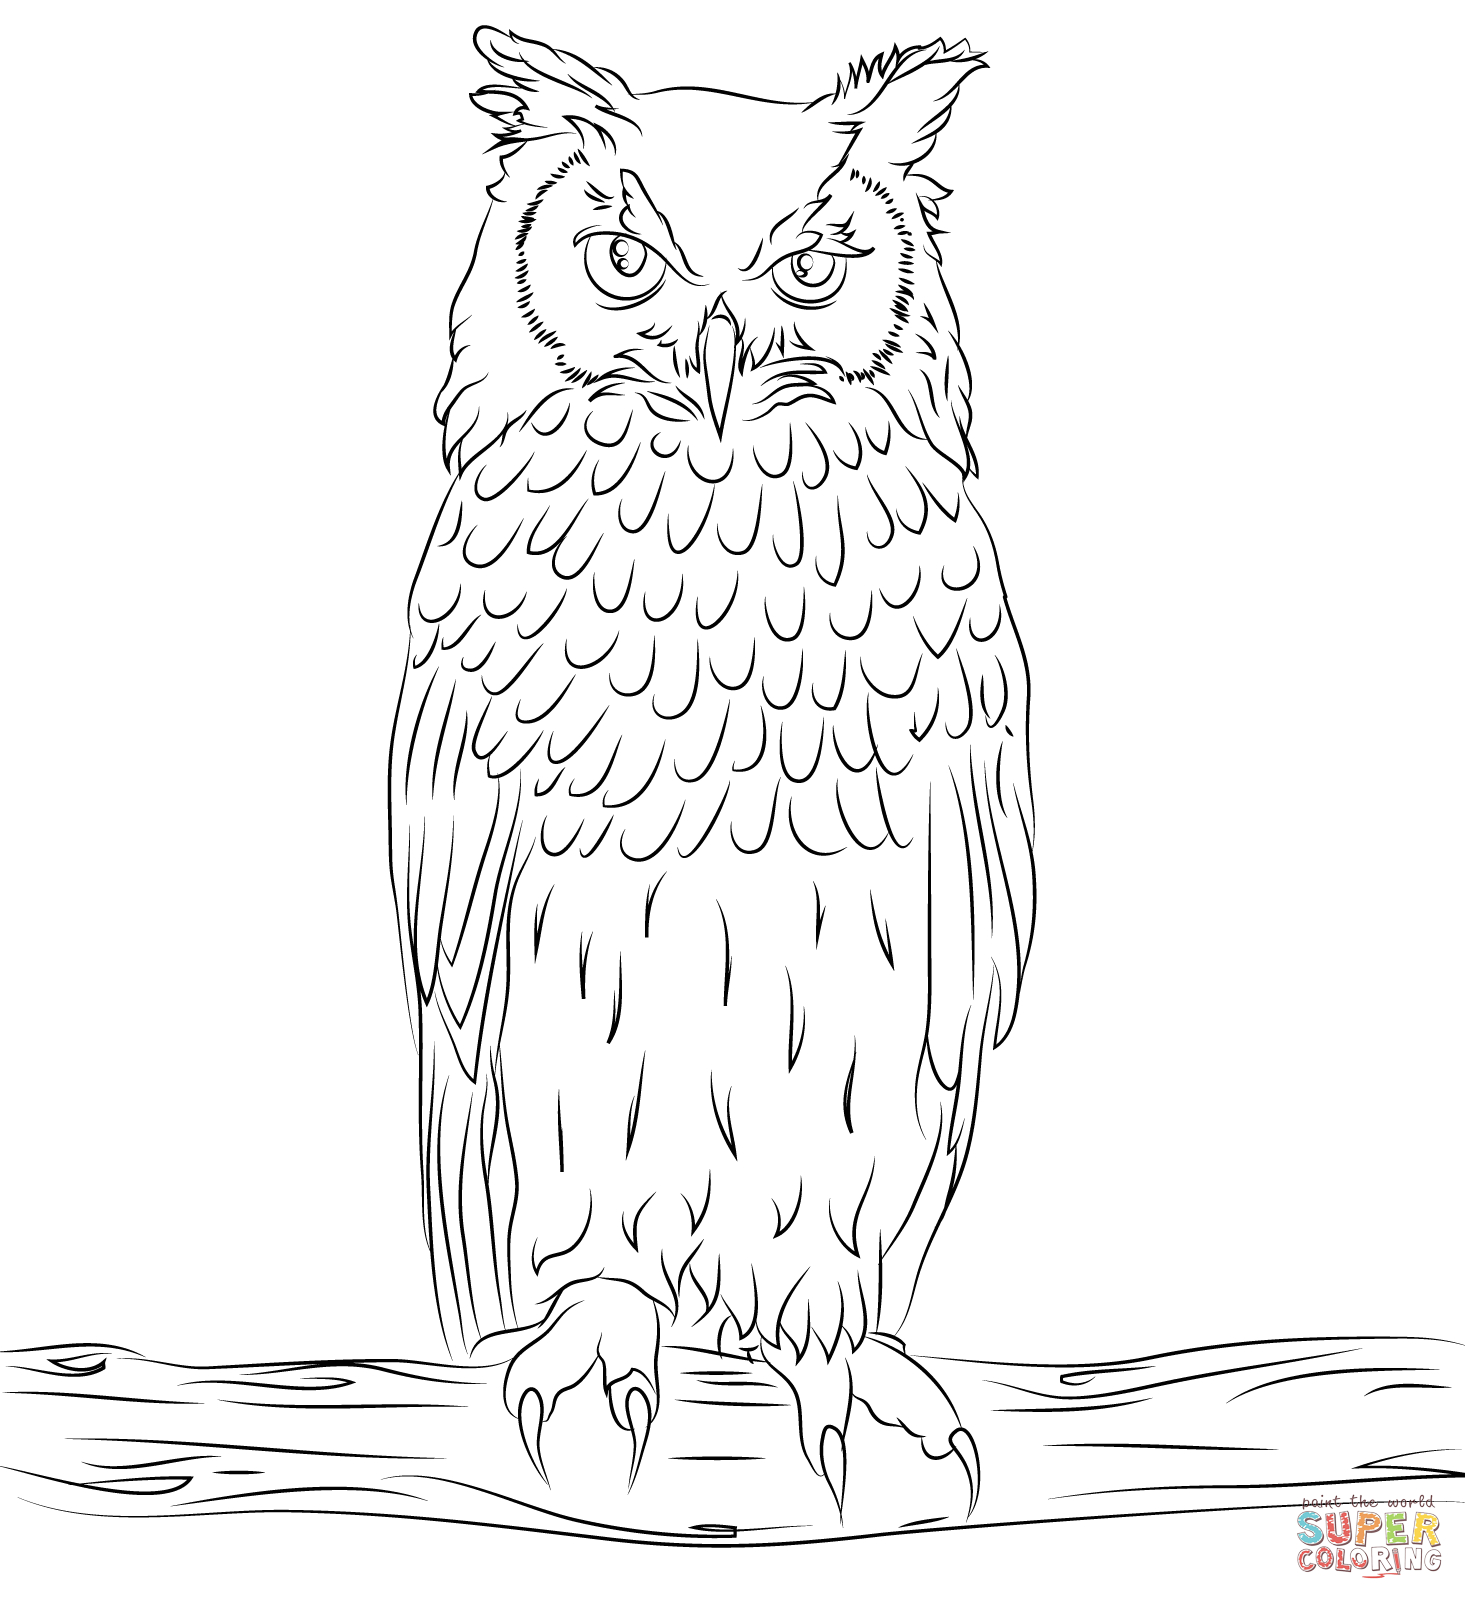 Sumptuous Design Inspiration Free Owl Coloring Pages Owls innen Malvorlage Uhu